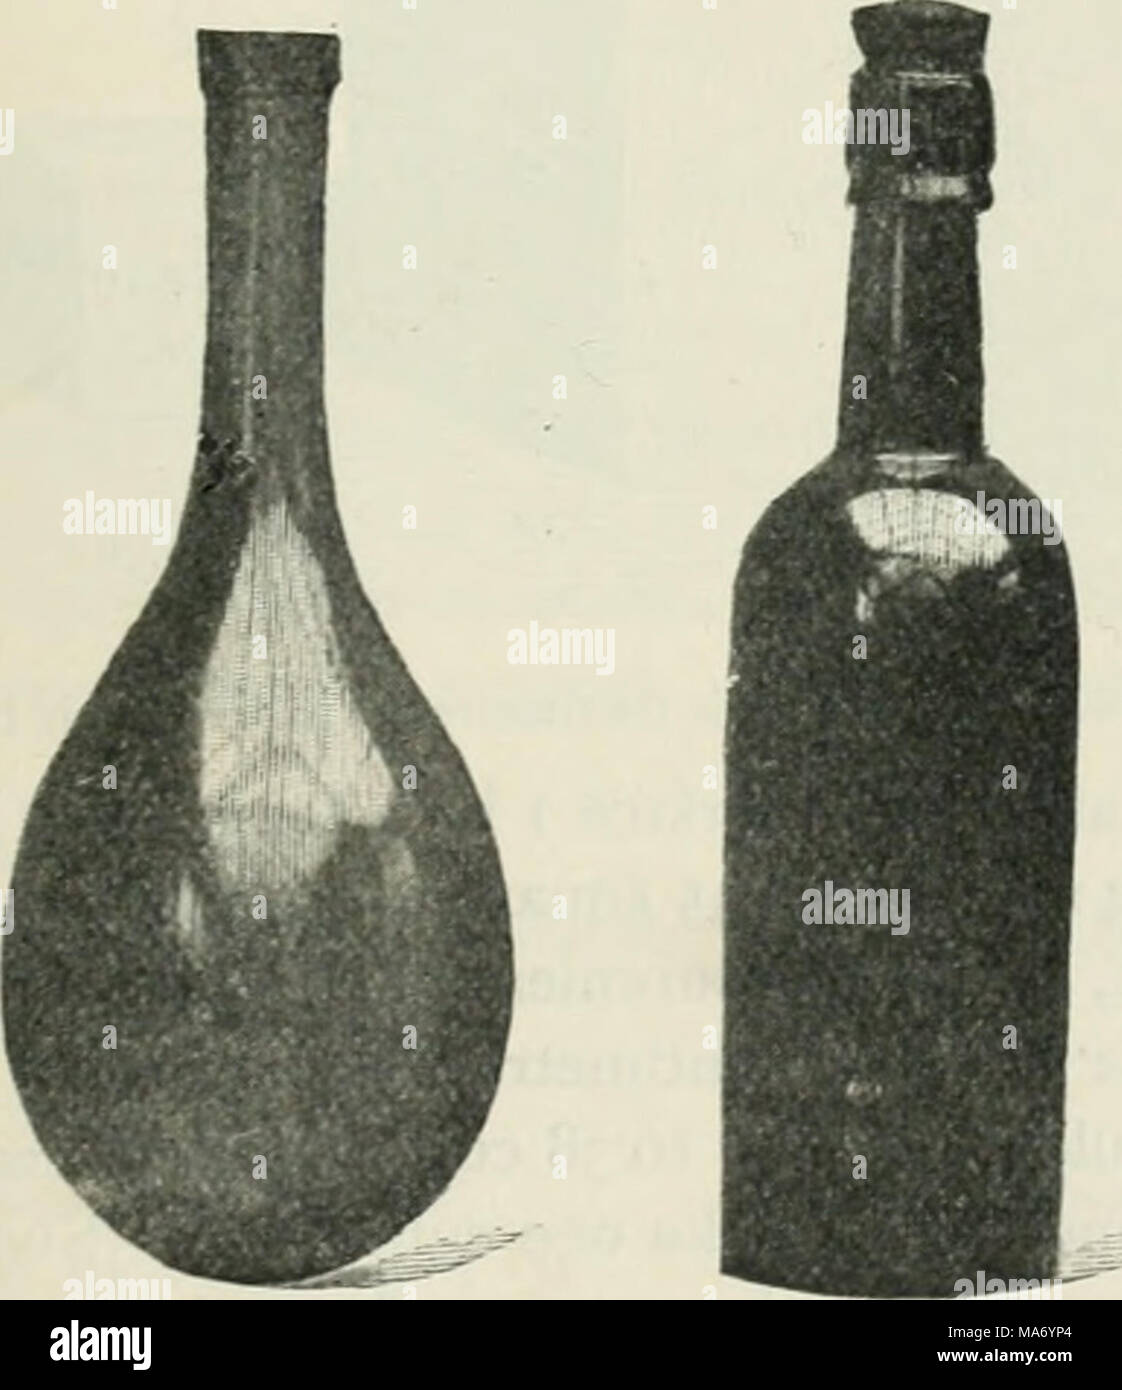 . Elementary physics and chemistry: first stage . Litre. Pint. Fig. 17.—A litre bottle will hold ij pints. These two bottles look nearly the same size, but the glass of the litre bottle is much thinner than that of the pint bottle. cubic centimetres of liquid. This capacity is called a litre. All liquids are measured in litres in countries where the metric system is adopted. Thus in France, wine, milk, and such liquids are sold by litres instead of by pints. A litre is equal to about one and three-quarters English pints. A litre bottle and a pint bottle are shown side by side in Fig. 17. - Stock Image